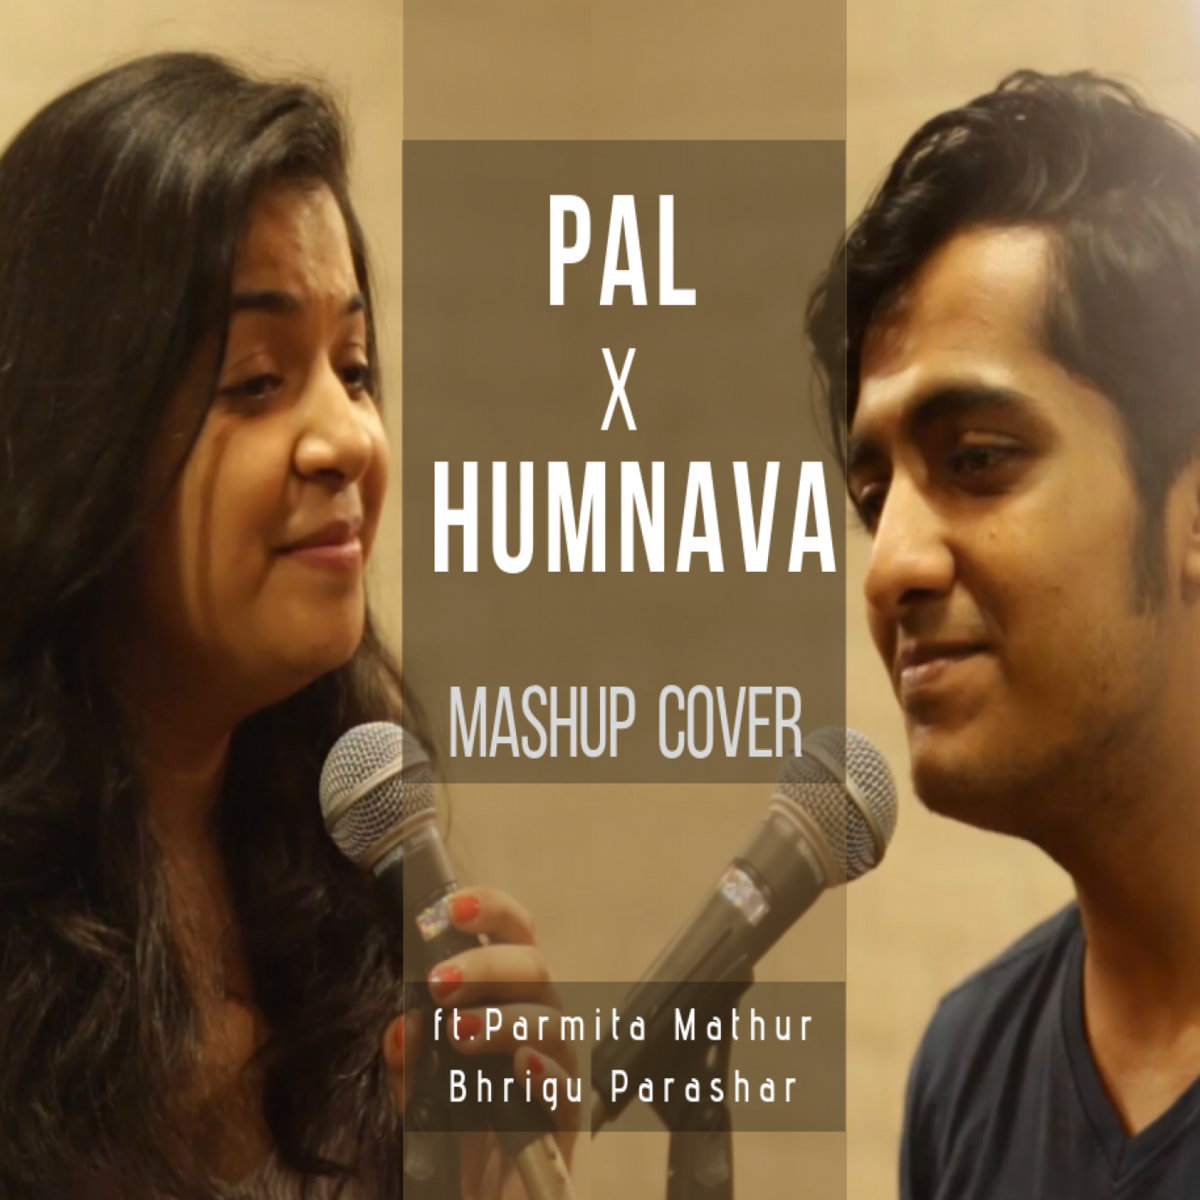 Pal X Humnava Mashup Cover Ft  Parmita Mathur & Bhrigu